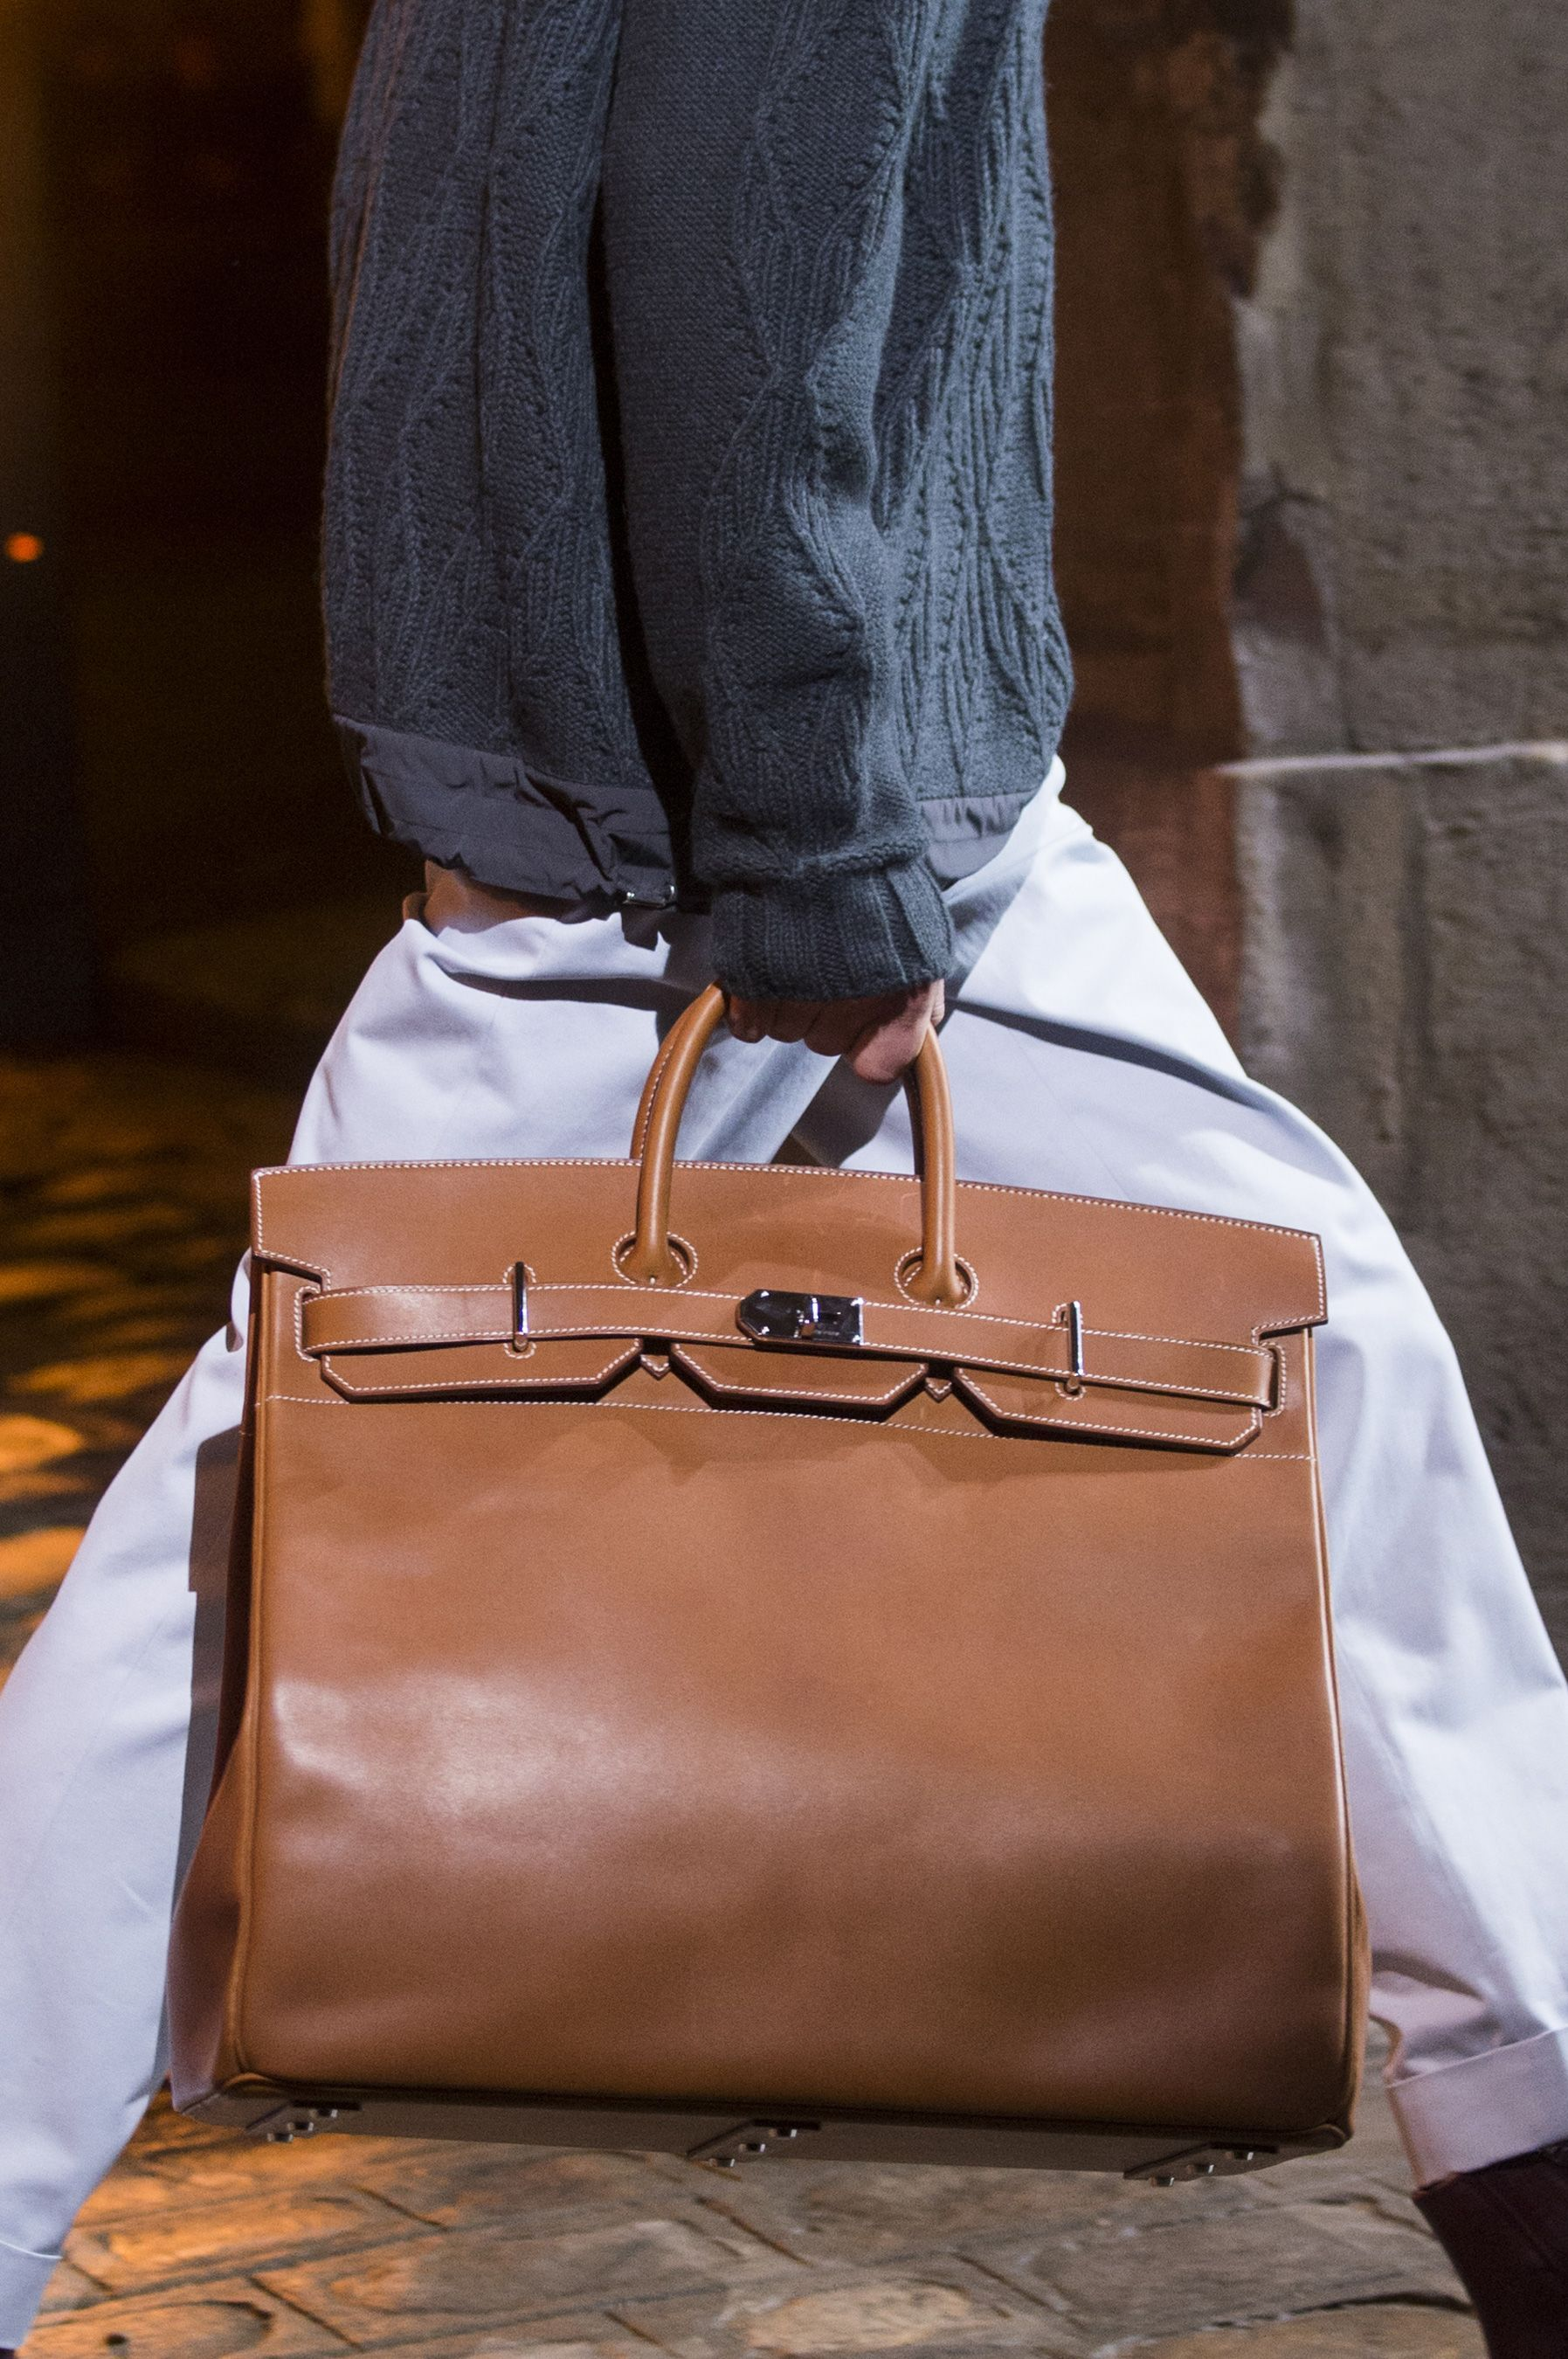 Sacs À Main Pour Hommes. Hermes Fall 2018 Men s Fashion Show Details - The  Impression  mensaccessoriesbags Maison Hermes, Hiver b0be8eeb994